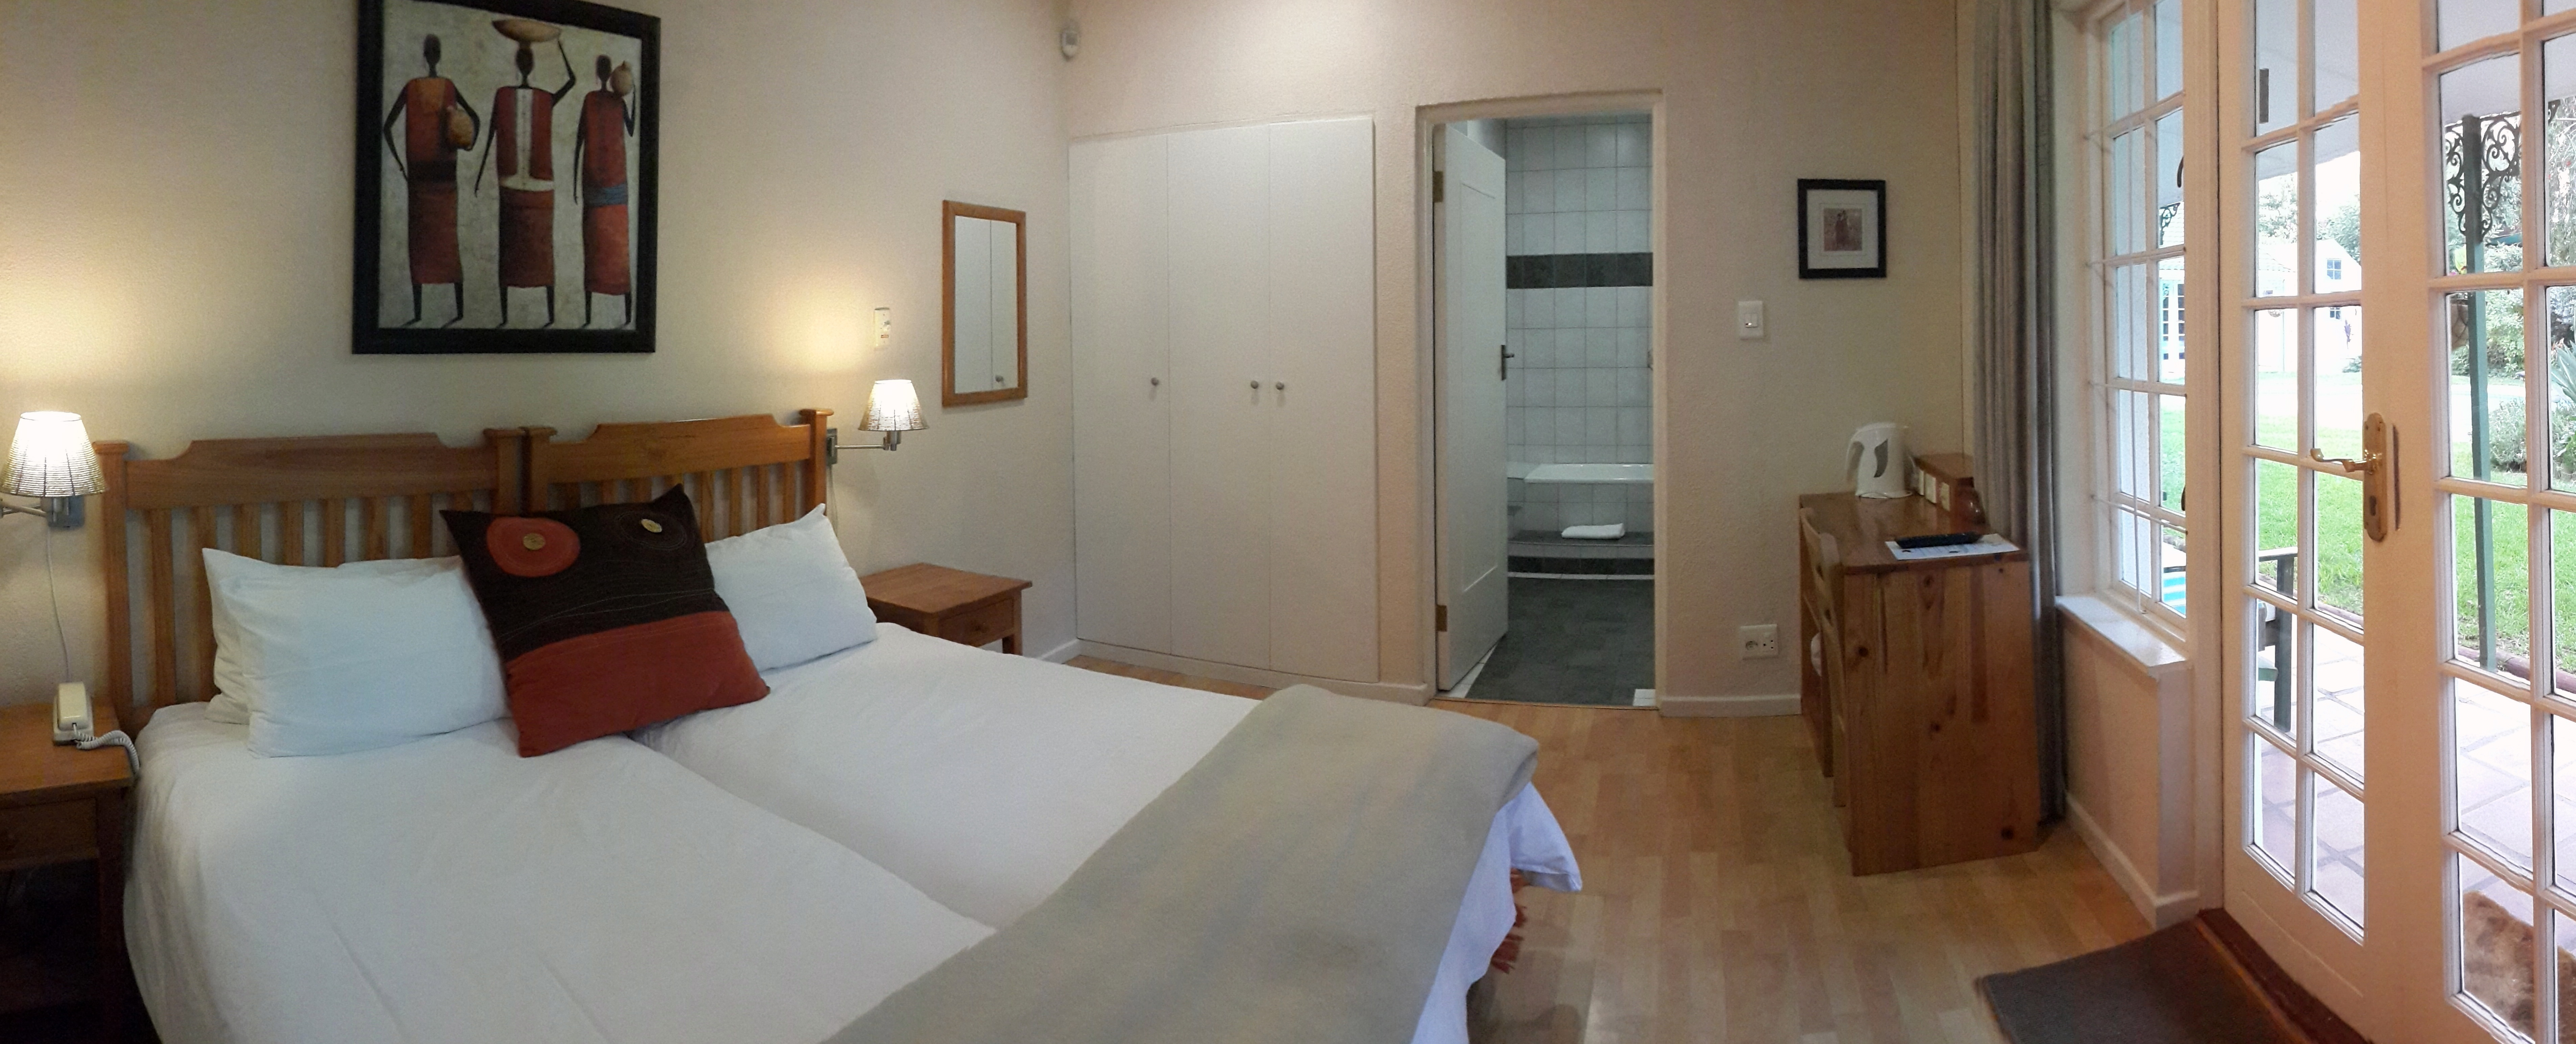 phillips zimmer 6 somer place bed breakfast